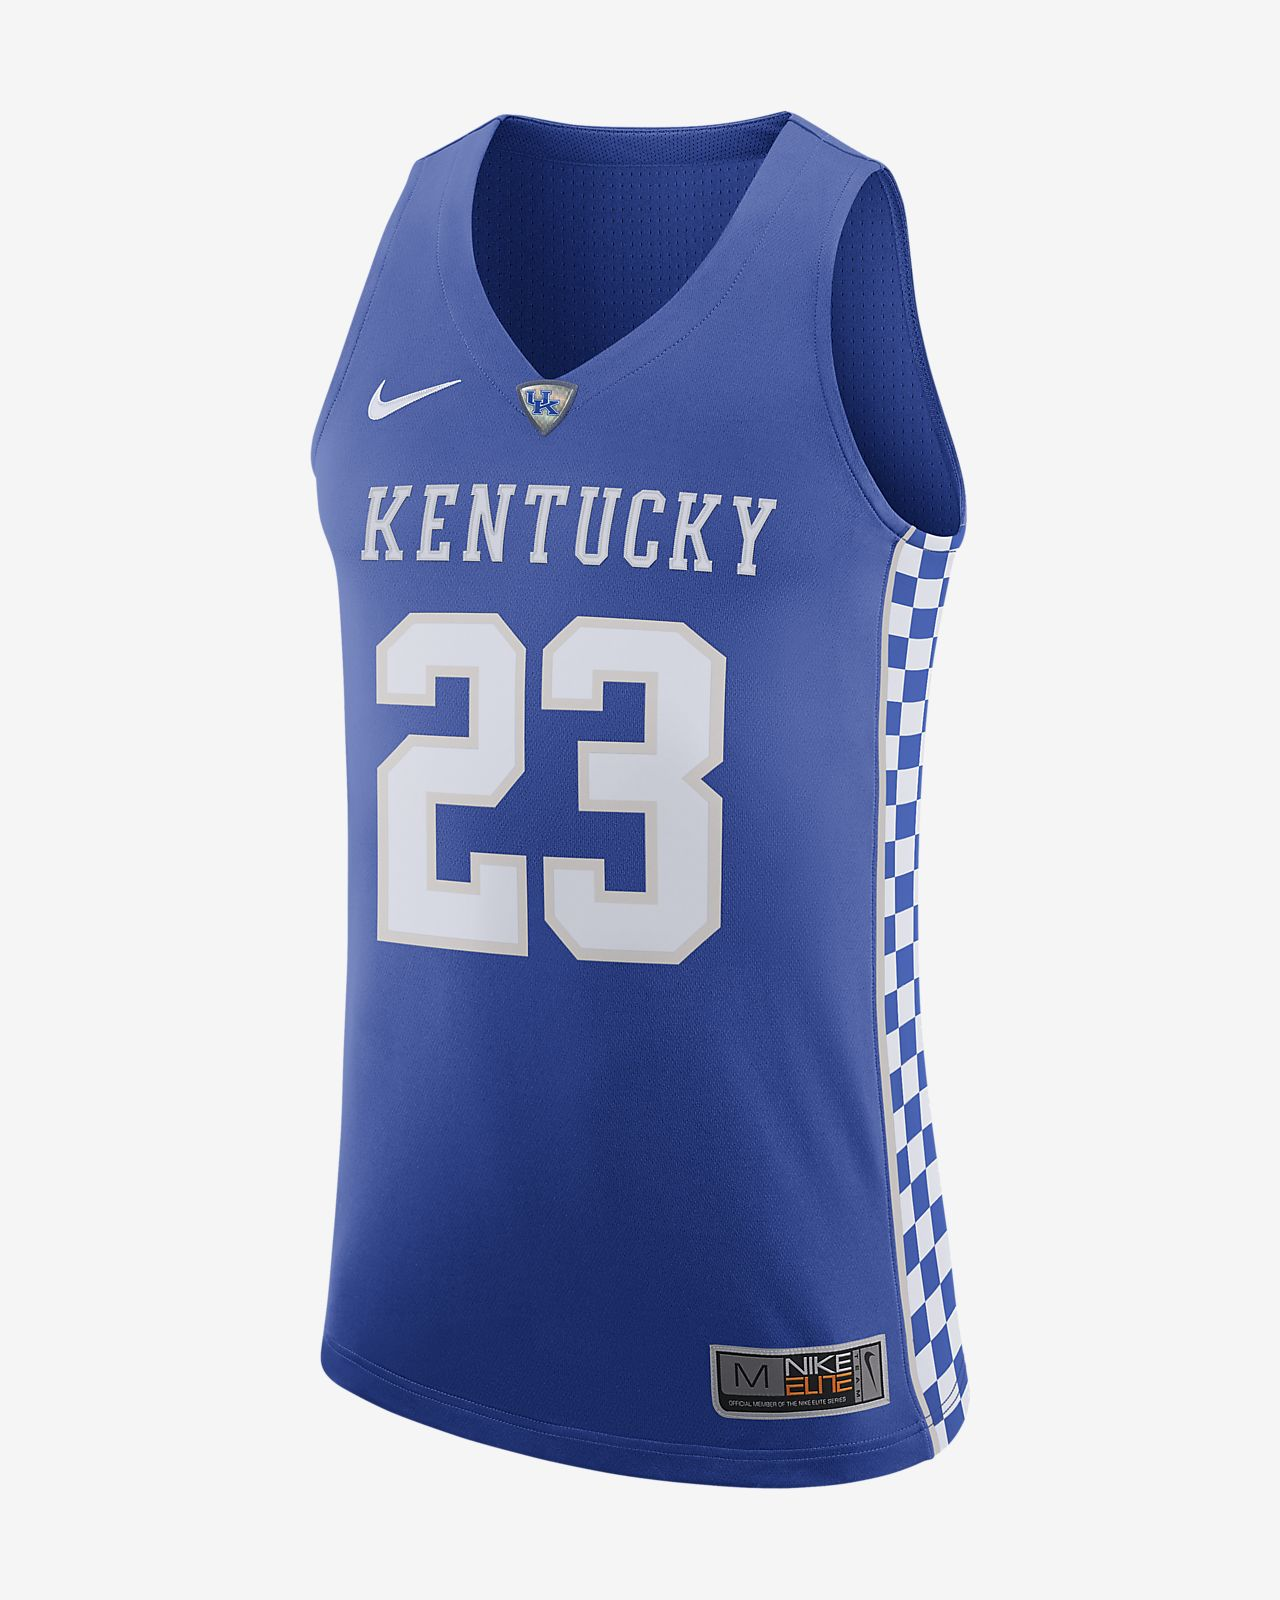 sale retailer fc2a2 01165 Nike College Authentic (Kentucky) Men's Basketball Jersey